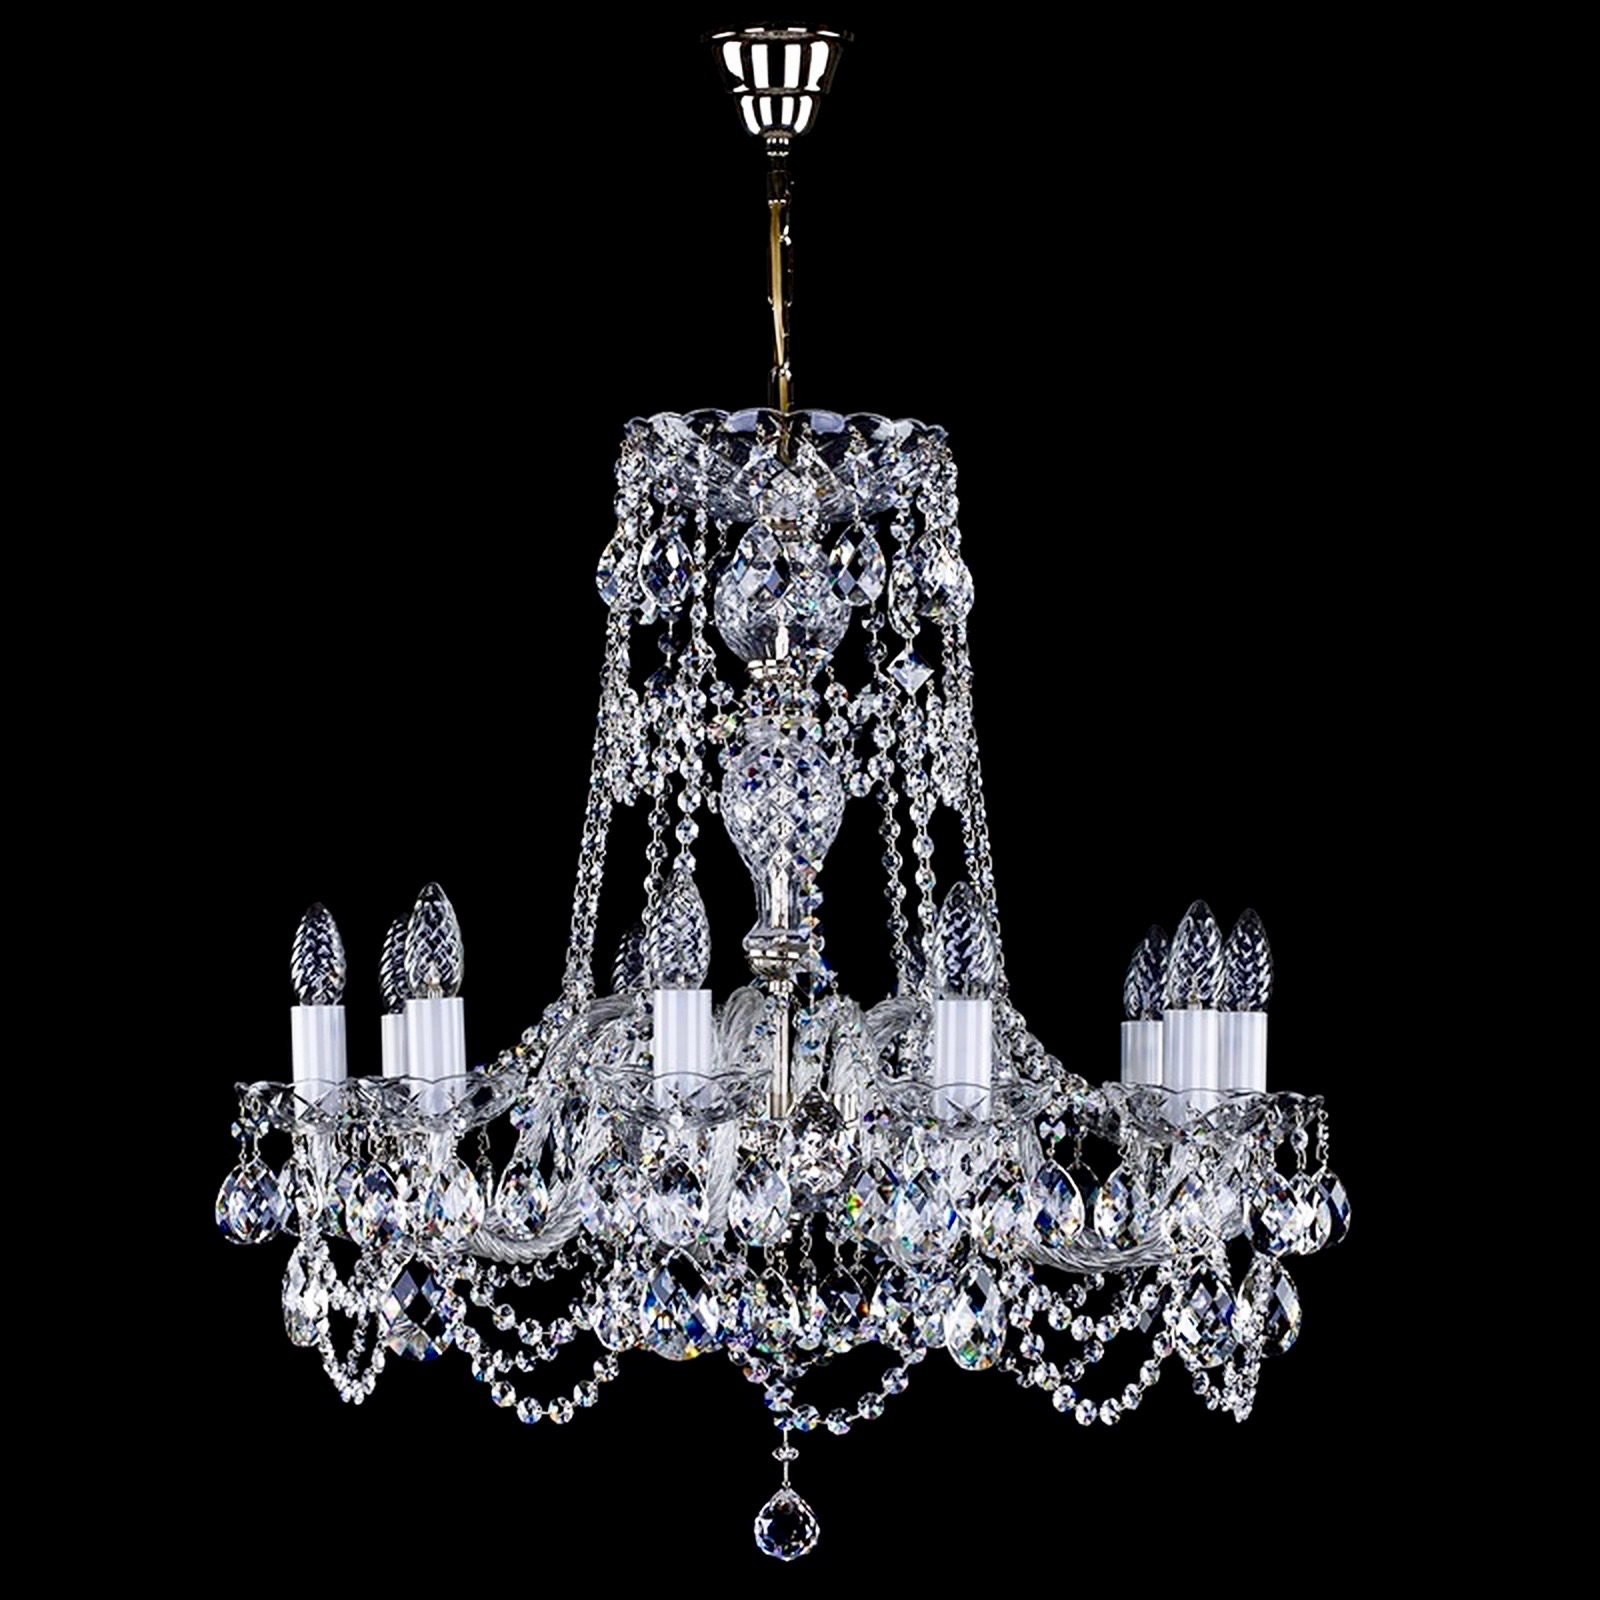 Crystal chandeliers and lighting with glass arms